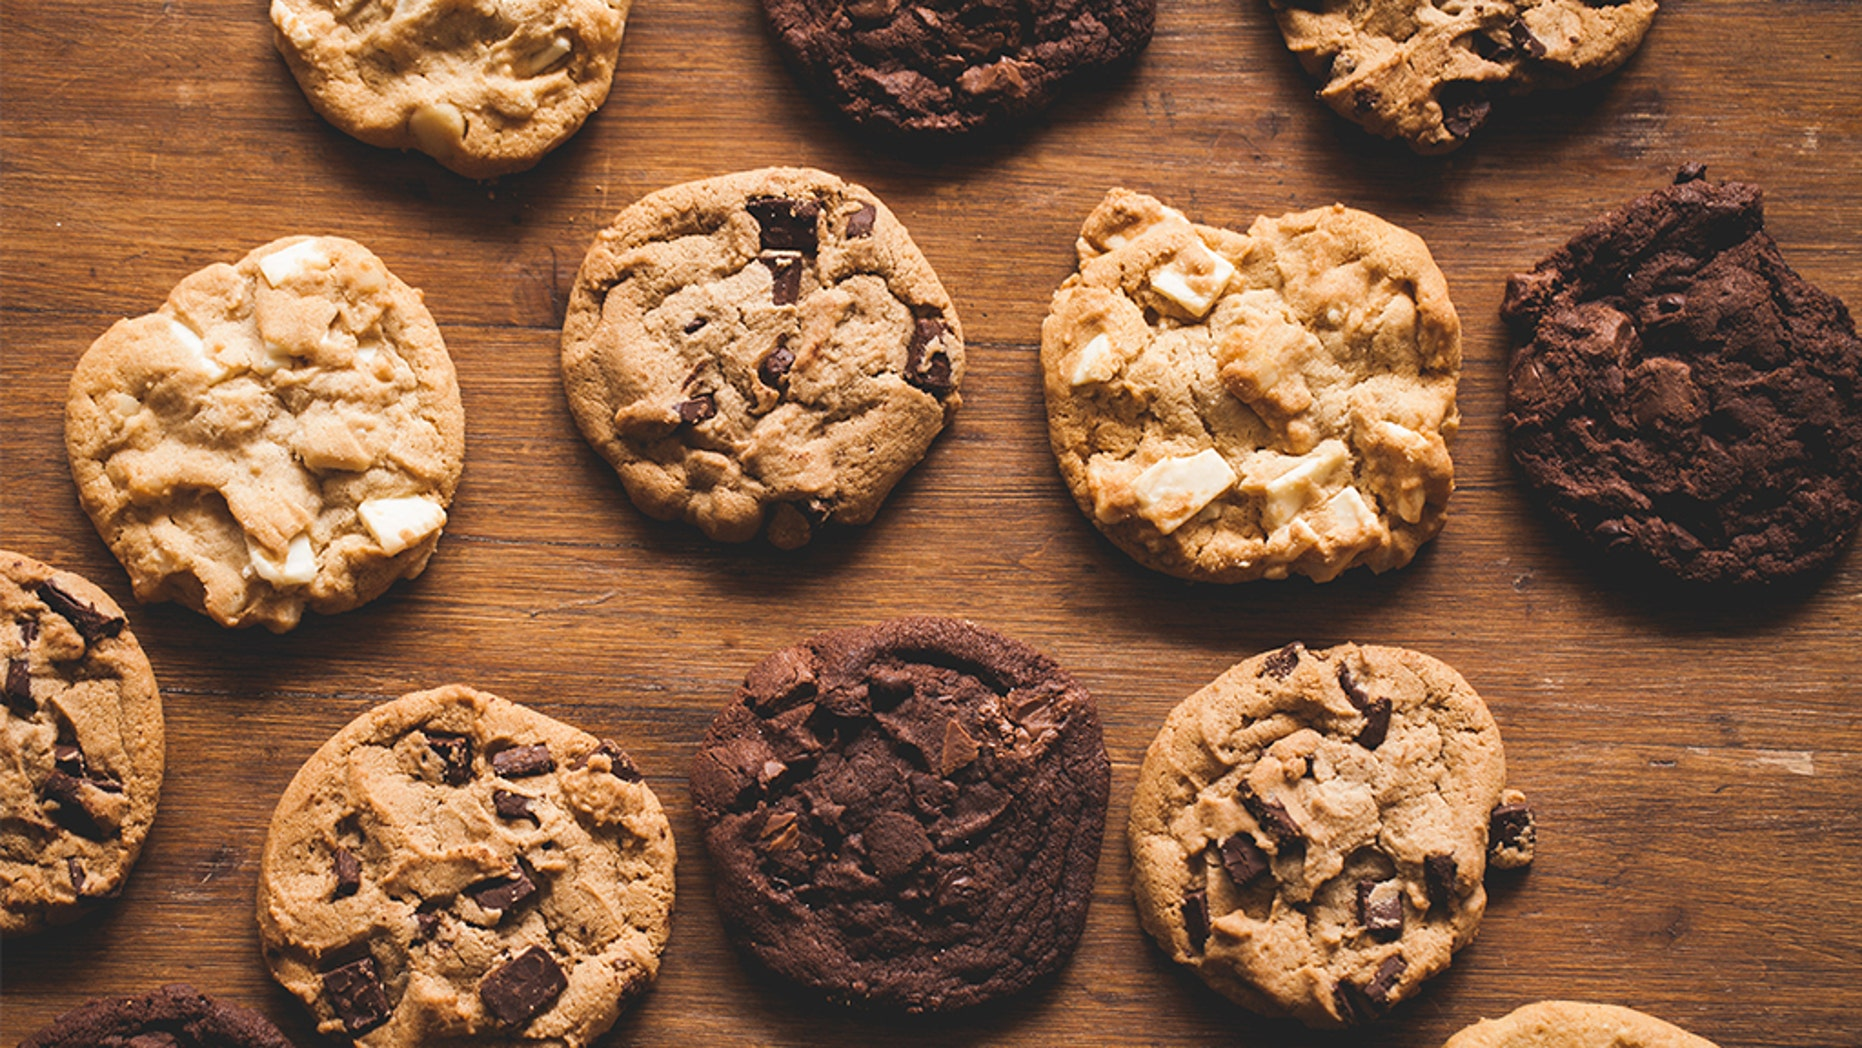 Don't Eat Raw Cookie Dough, Warns CDC